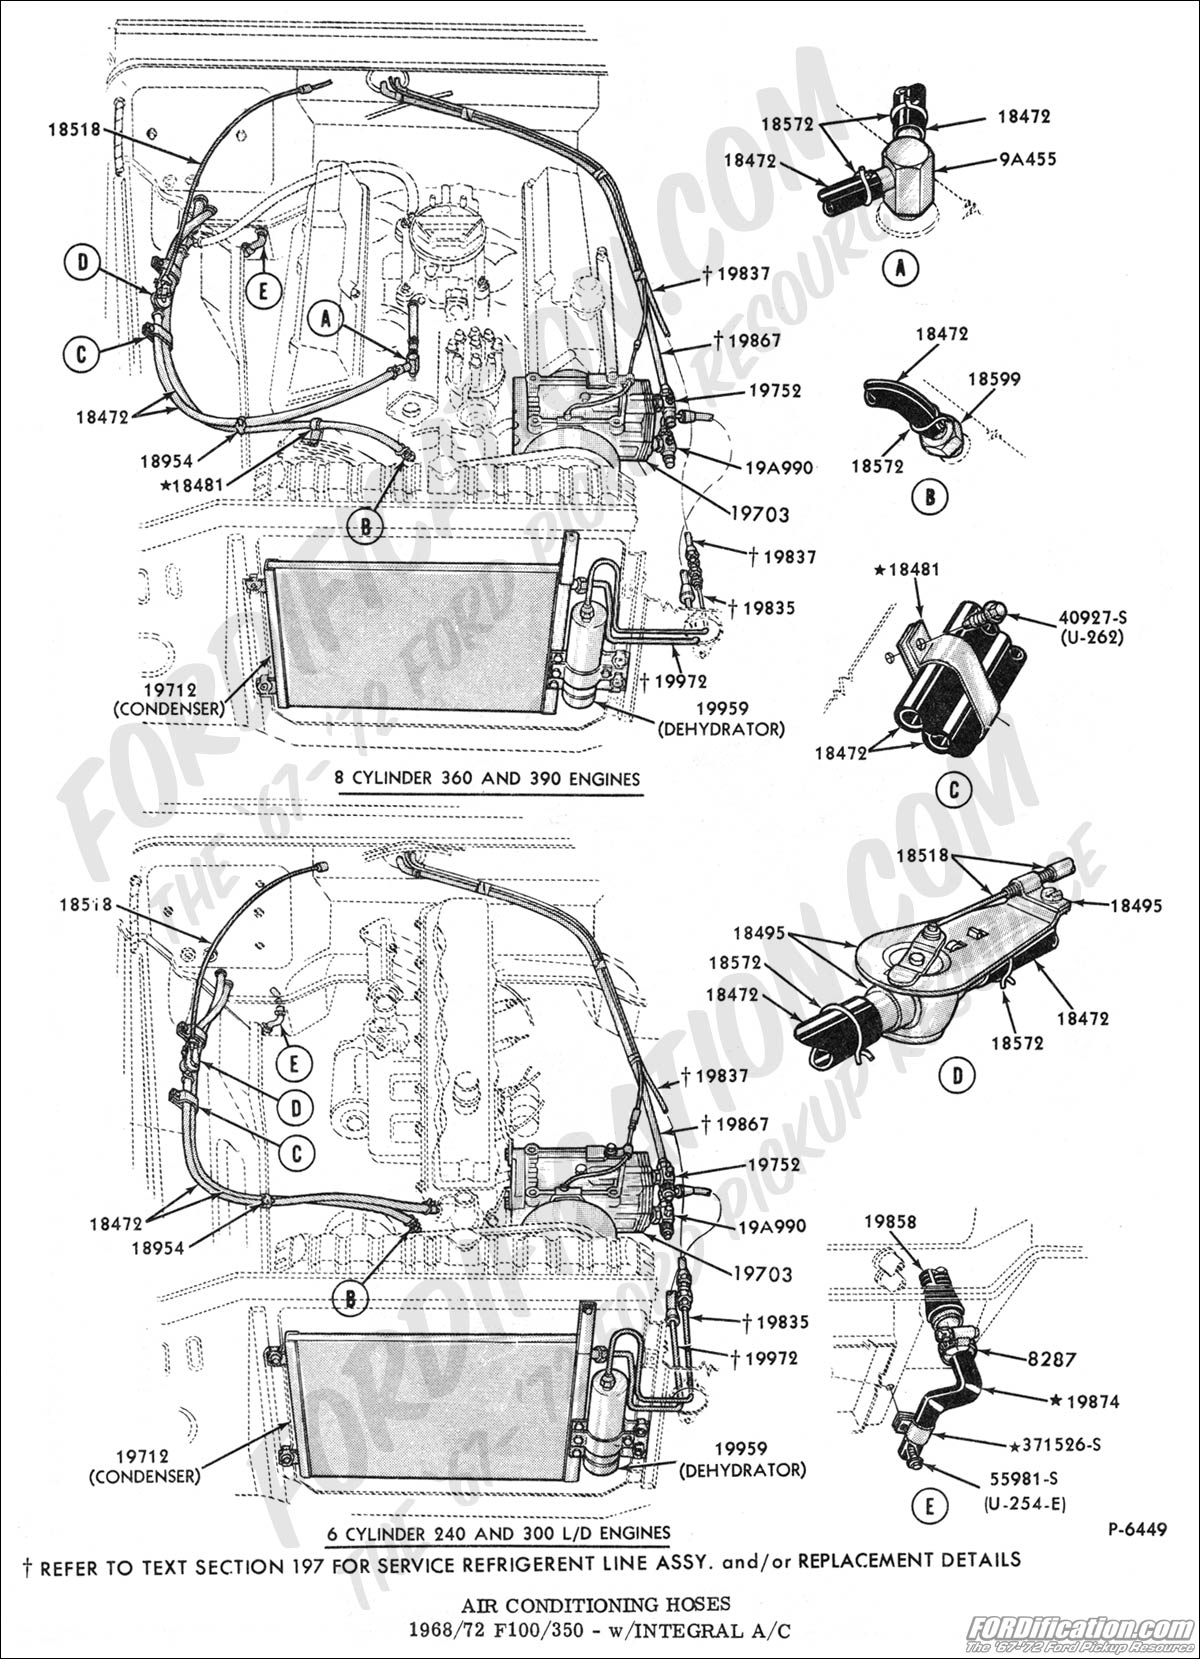 2007 ford focus wiring diagram with 1170740 Need To Find Heater Hose Manifold Connector Ideas on Showthread besides Fiat Fiorino Mk3 Fiat Qubo Od 2007 Roku Bezpieczniki Schemat in addition Post 2003 Ford Focus Fuse Diagram 486609 moreover 6l3wq Ford 350 Super Duty Map Sensor Located additionally 1iqyd Fuel Pump Relay Switch 1995 Ford E 350 7 3l Engine.